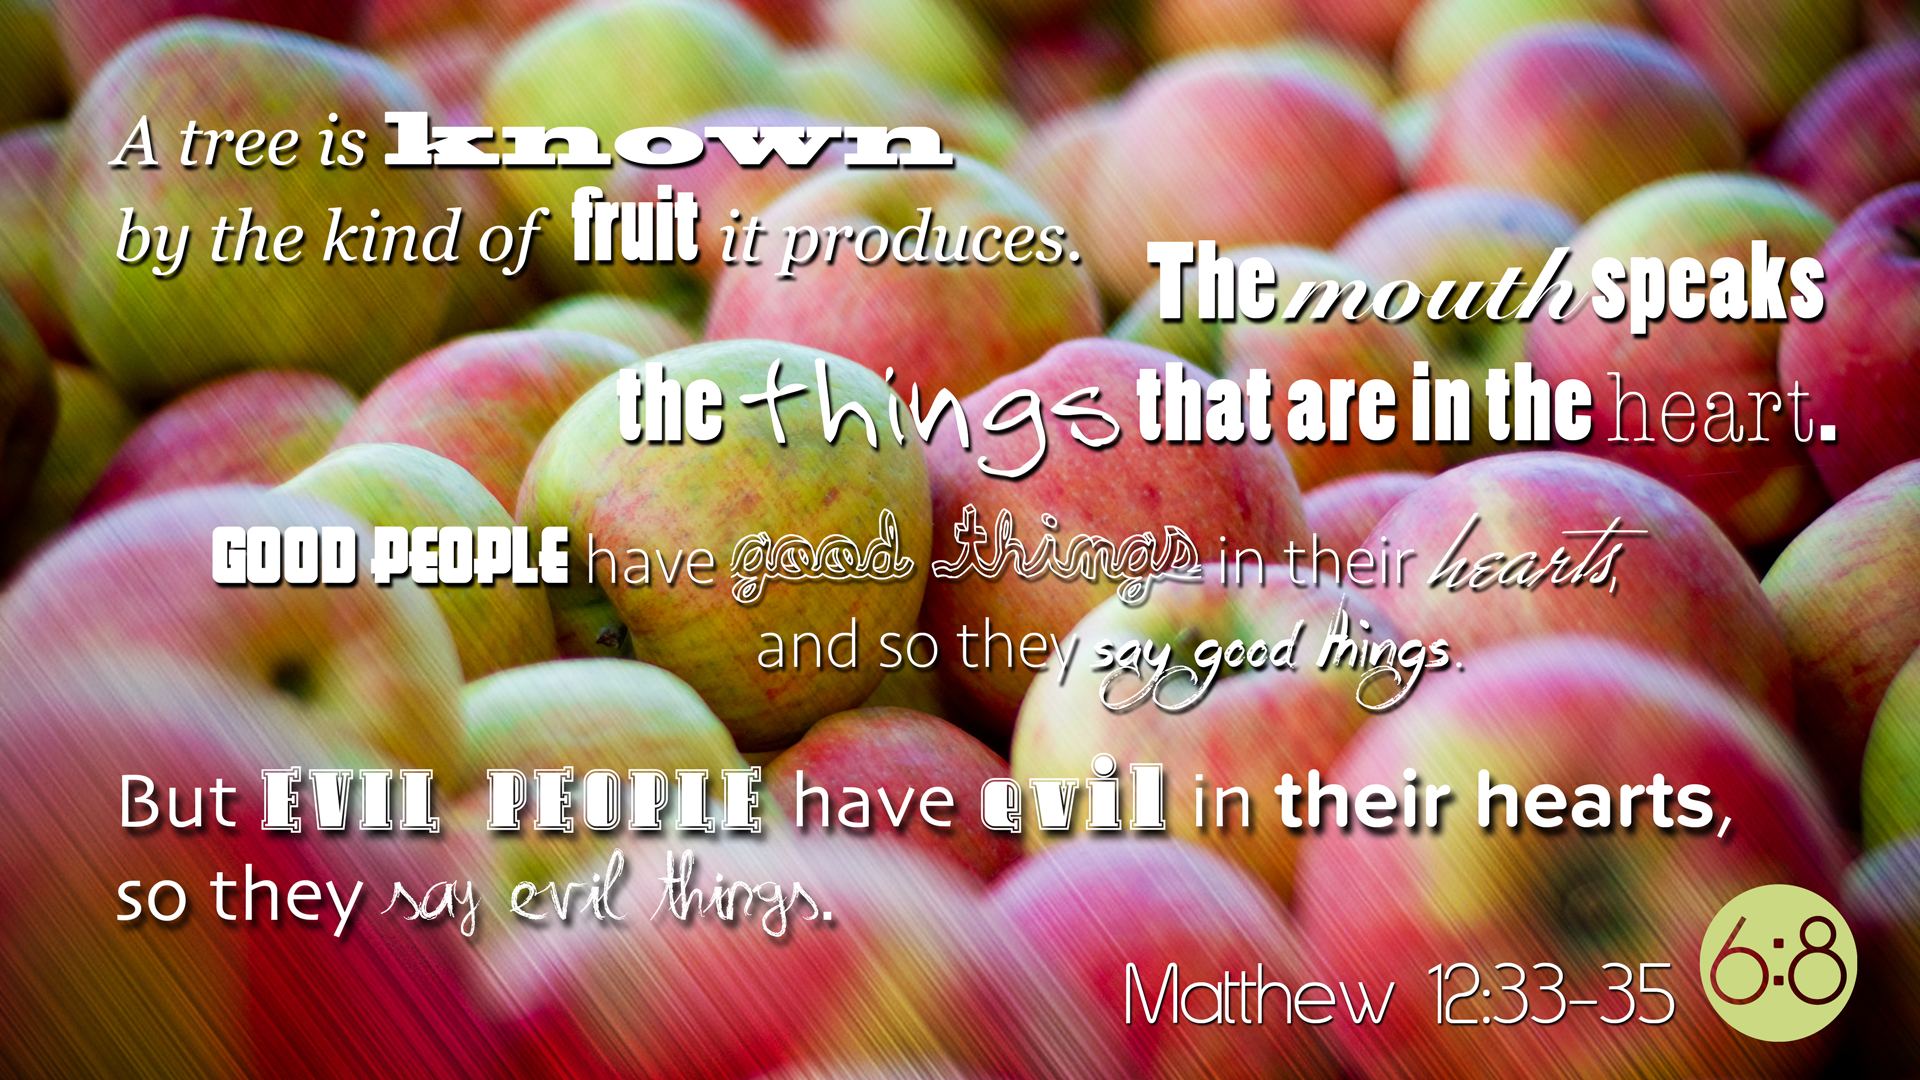 Free Computer Wallpaper – Matthew 12:33-35